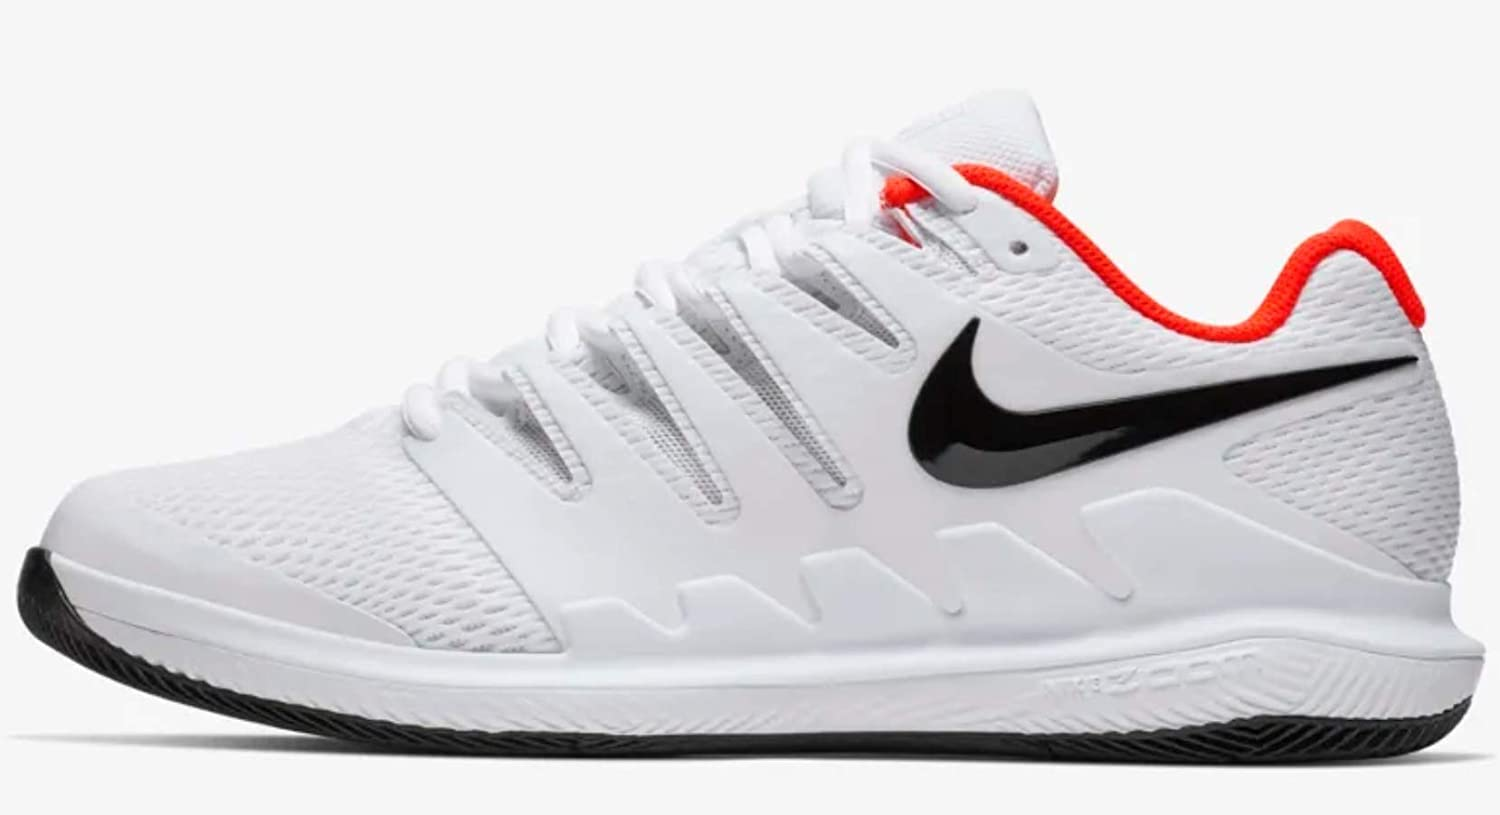 sports shoes 617fa 75295 Amazon.com   Nike Men s Air Zoom Vapor X Tennis Shoes   Tennis   Racquet  Sports